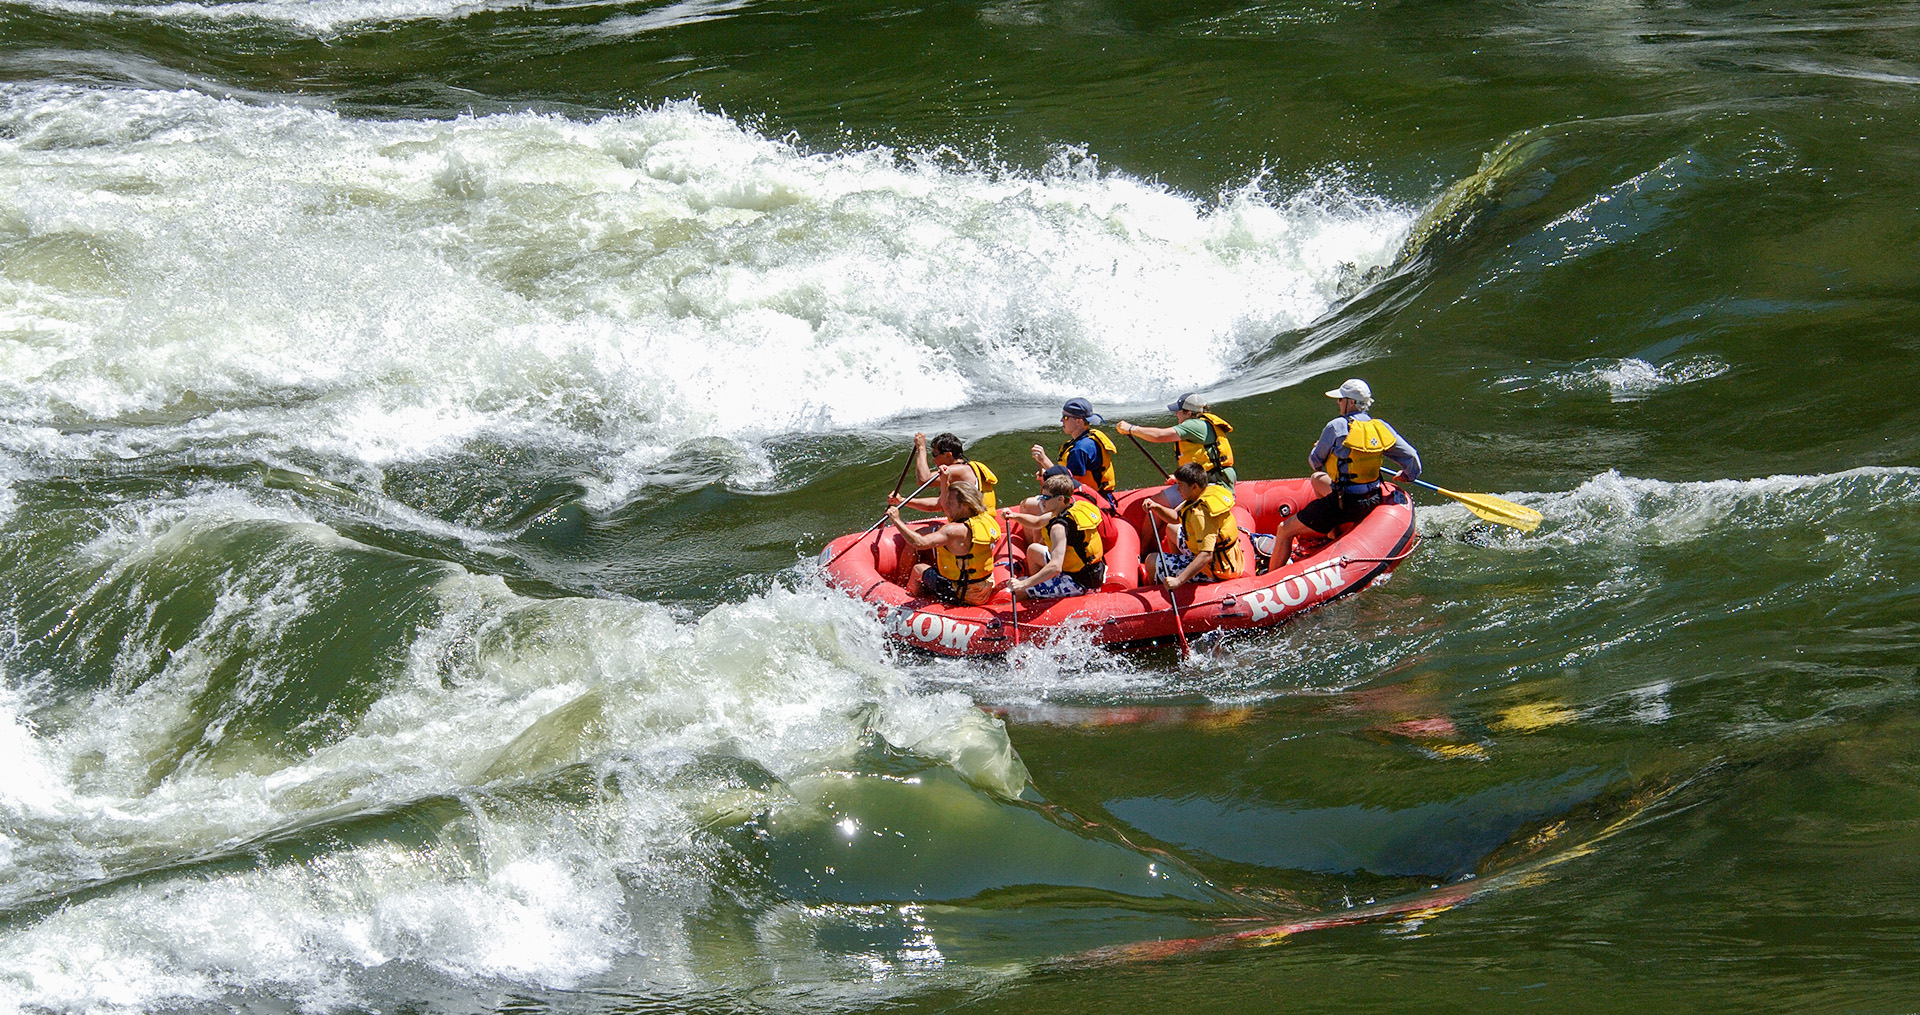 a group of people rafting through white water